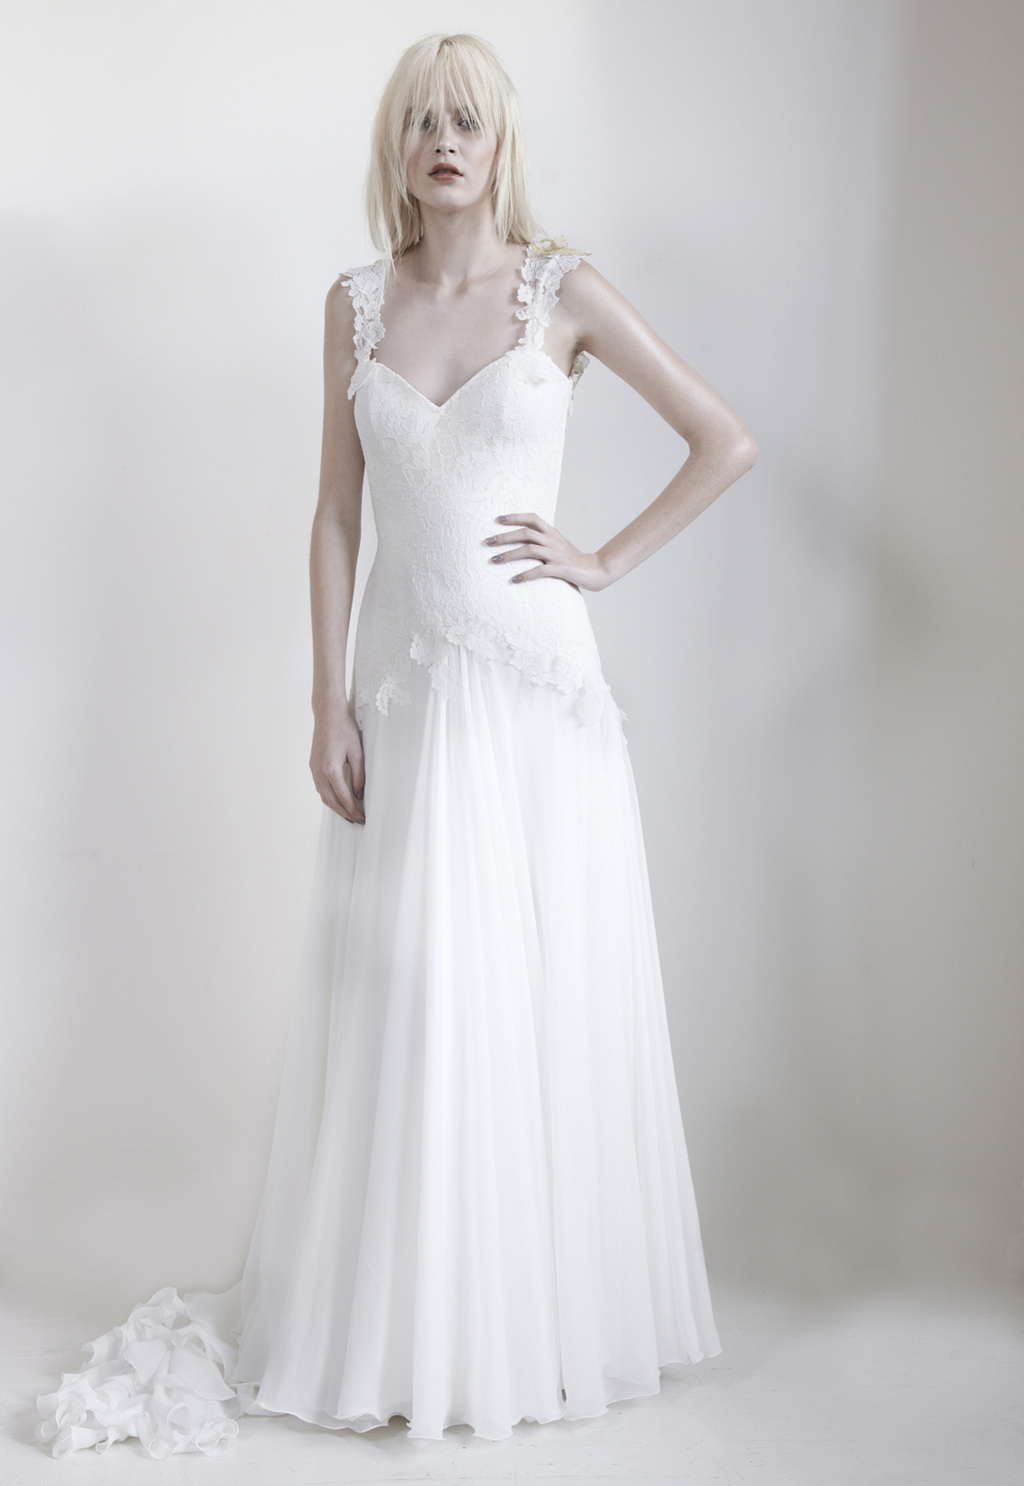 Mariana-hardwick-wedding-dress-2013-bridal-hallie.full